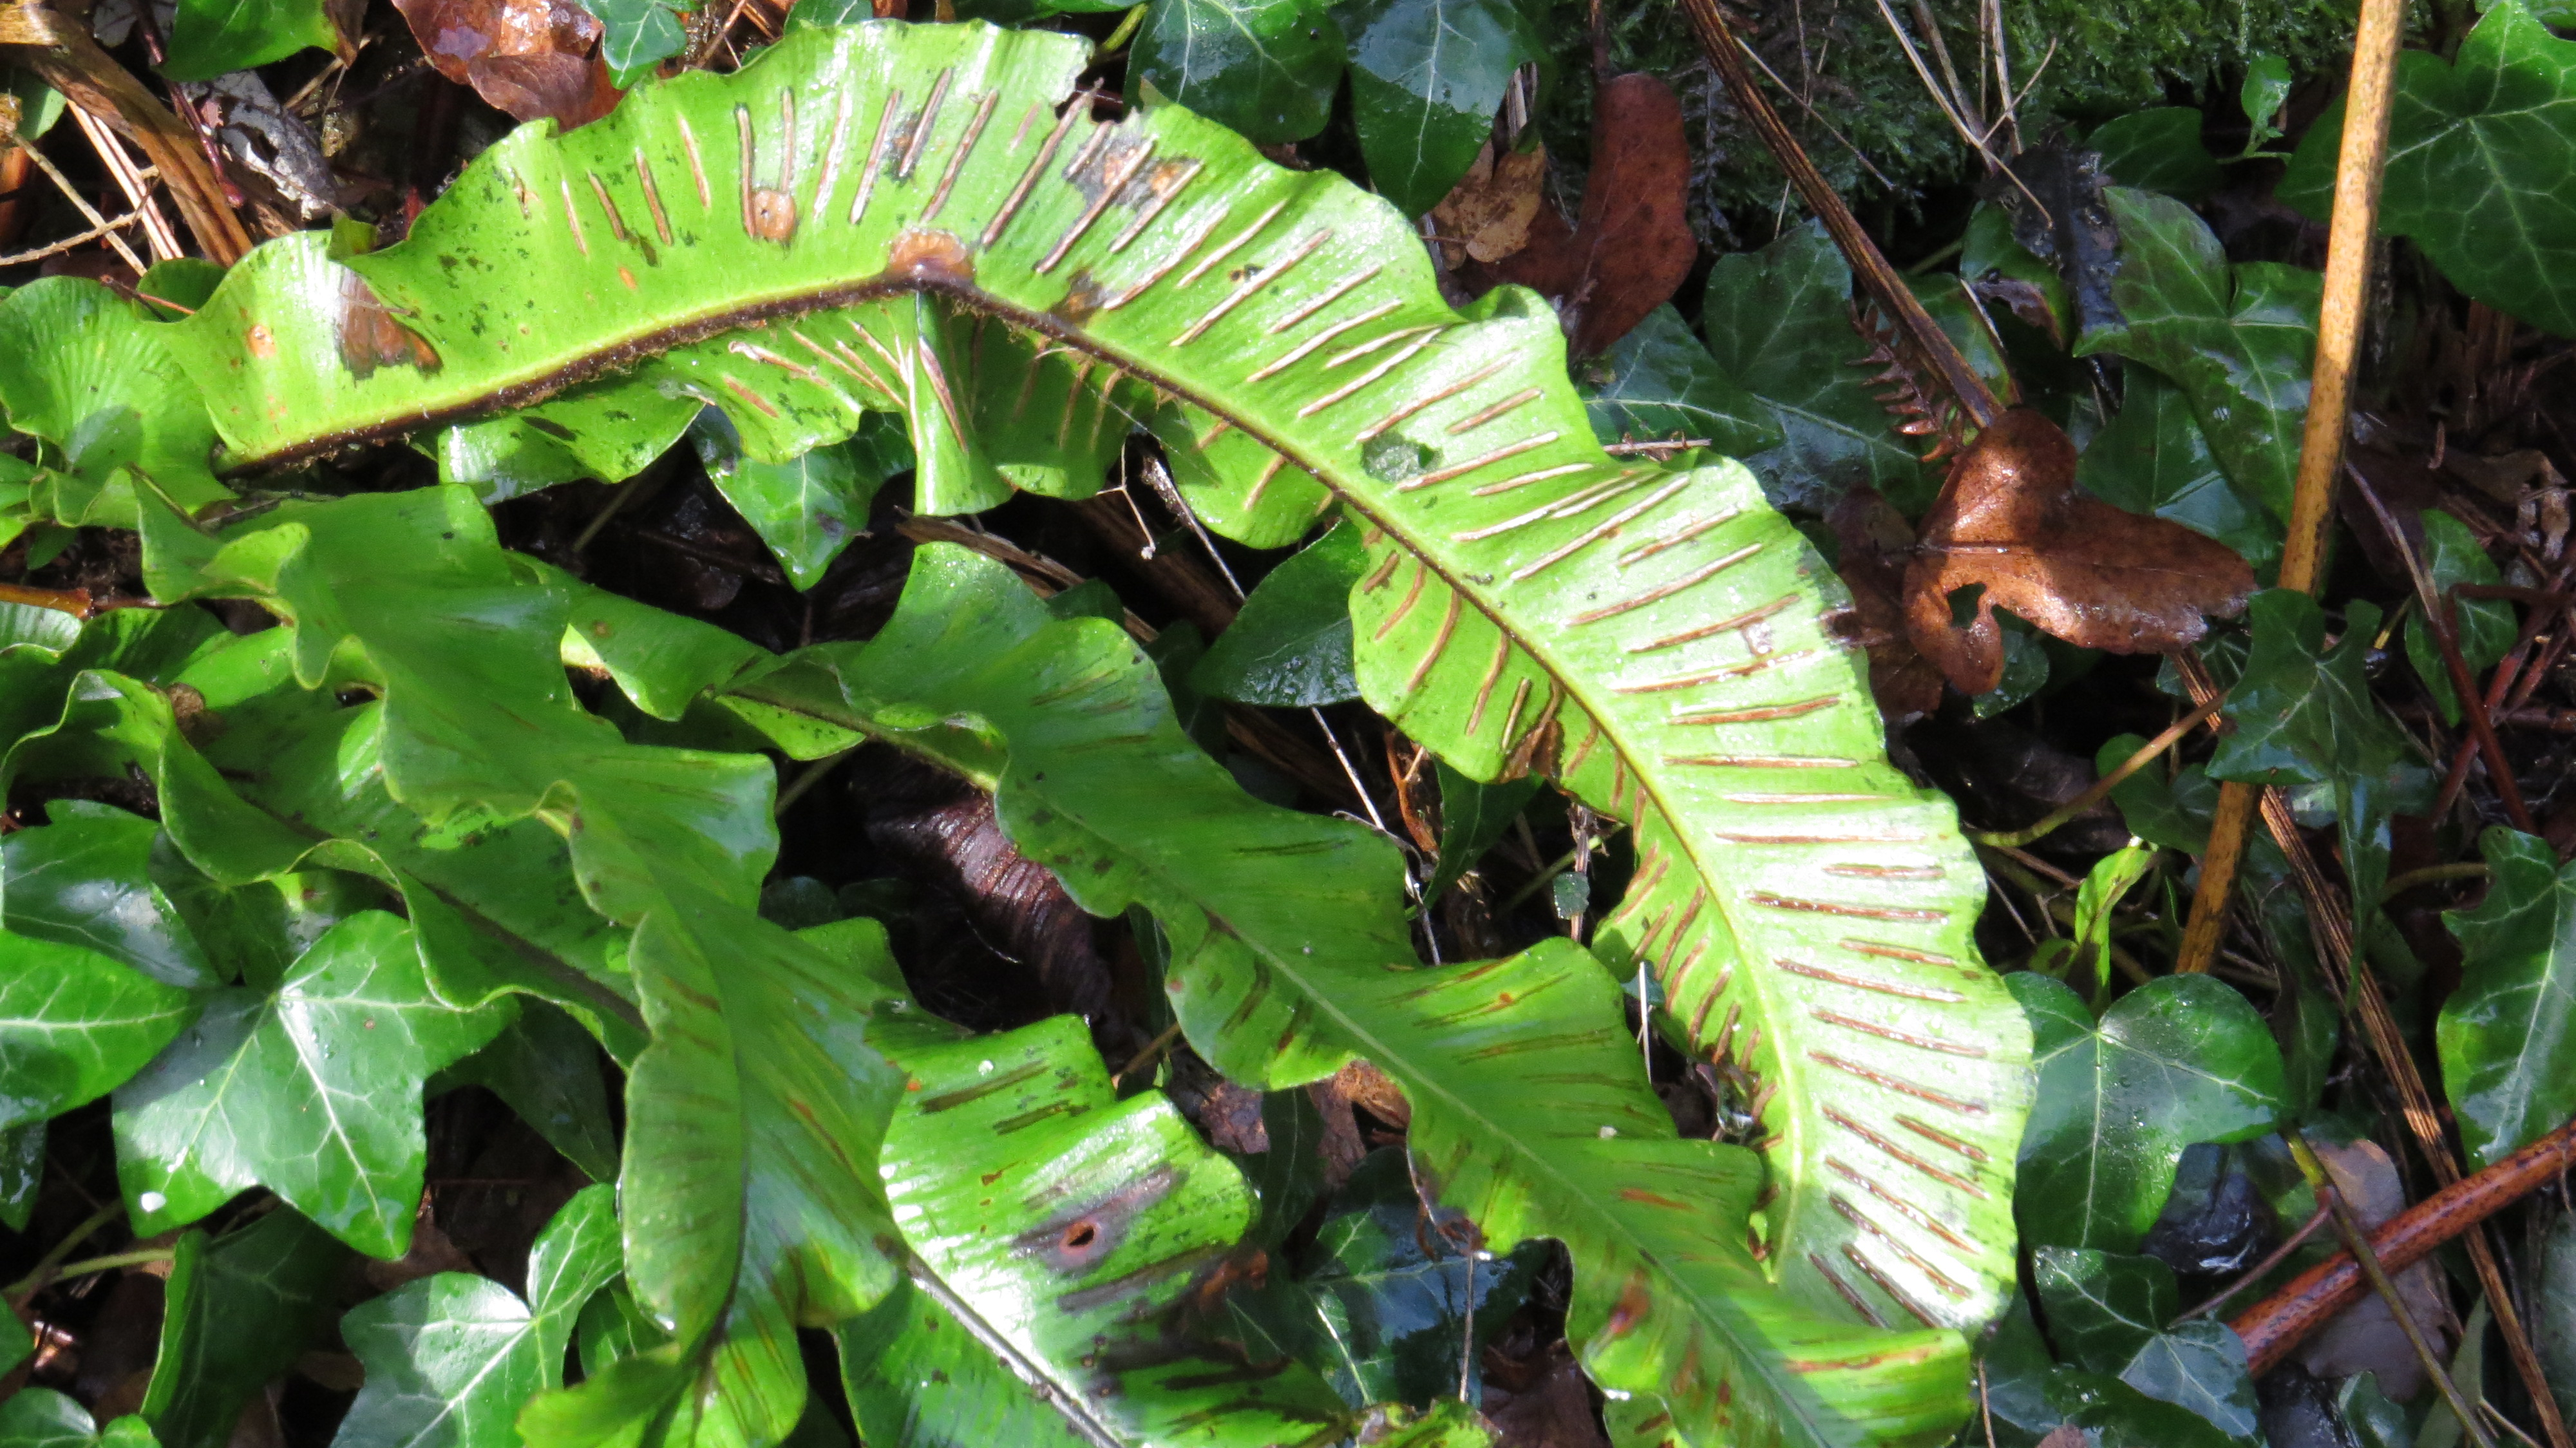 Wednesday Weed Harts Tongue Fern Bug Woman Adventures in London